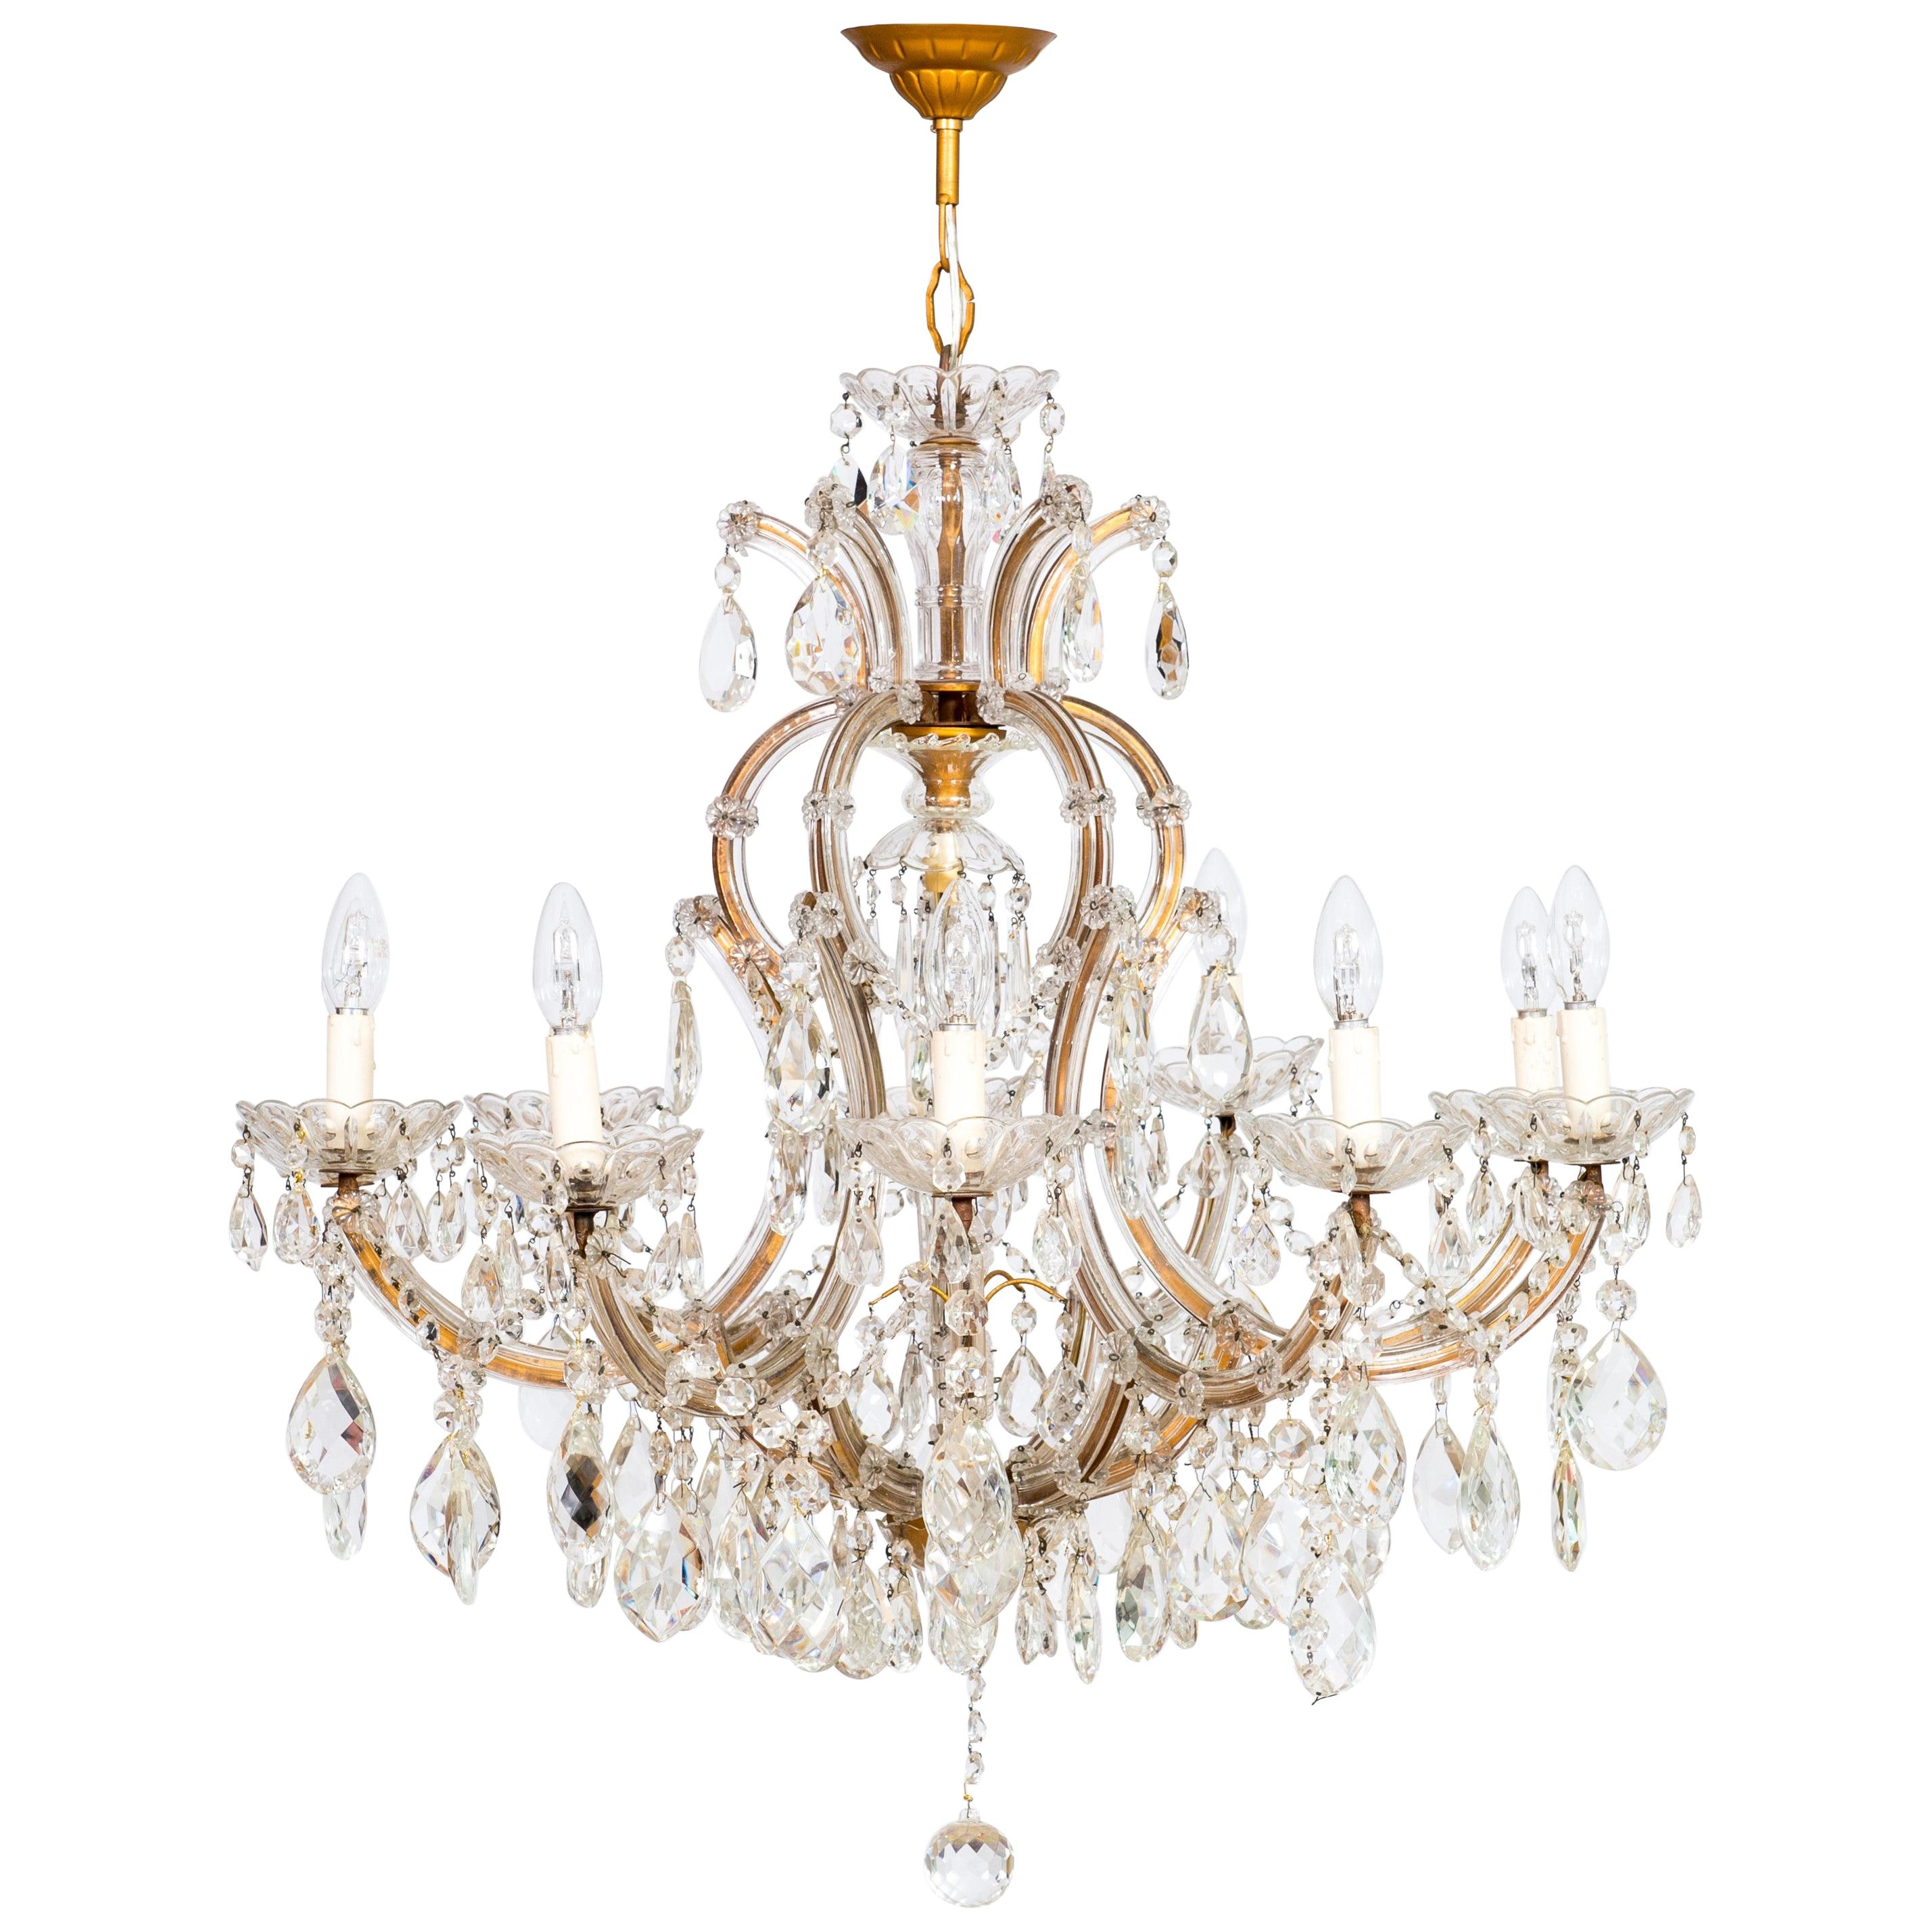 Maria Theresa Chandelier in Transparent Murano Glass, Italy, 1930s